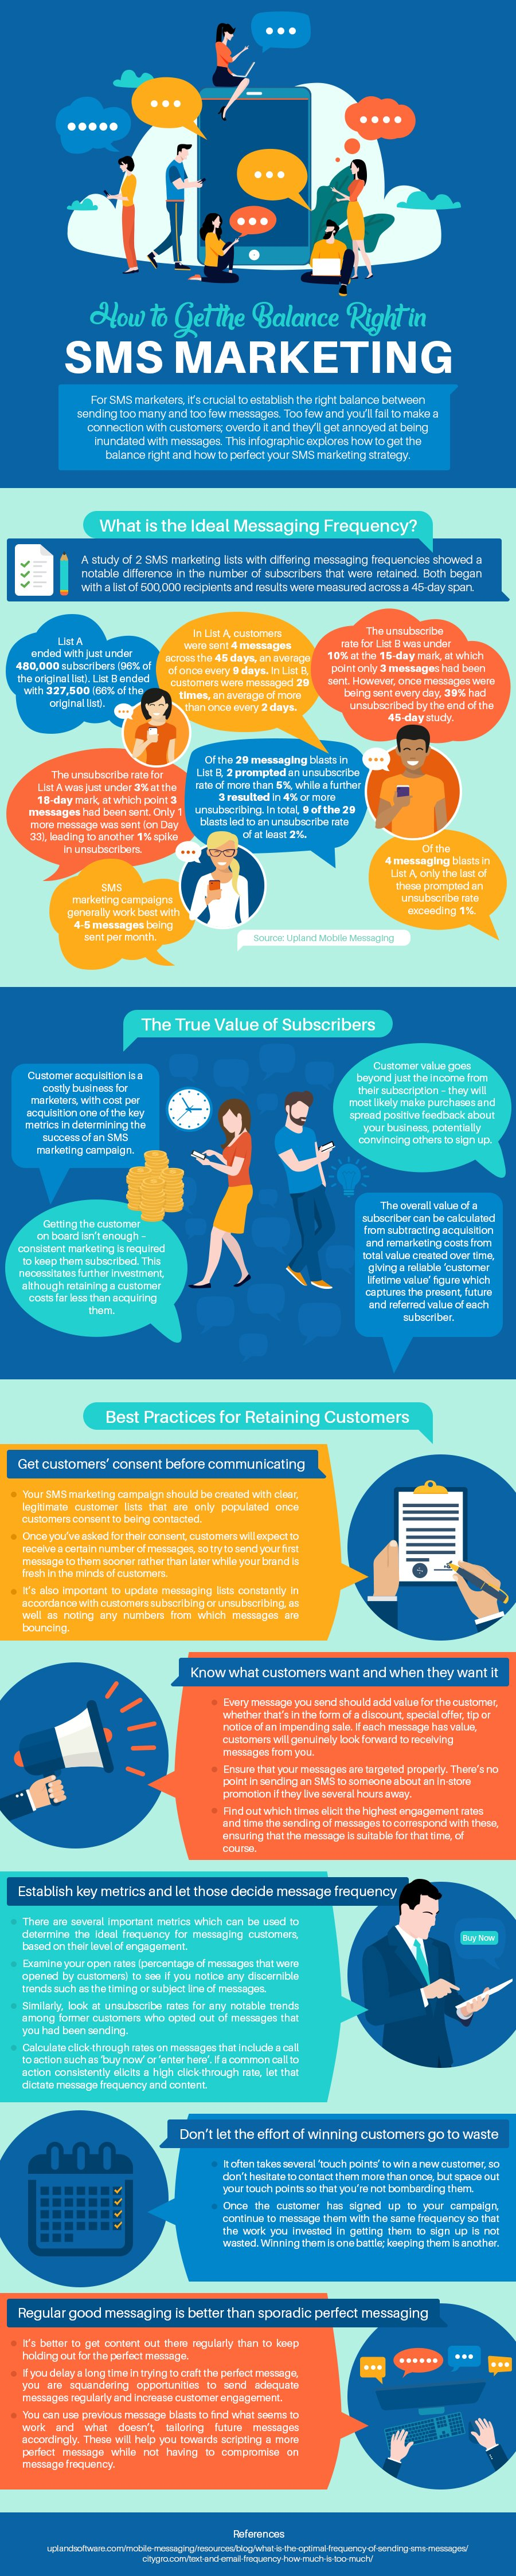 getting the balance right with SMS marketing infographic